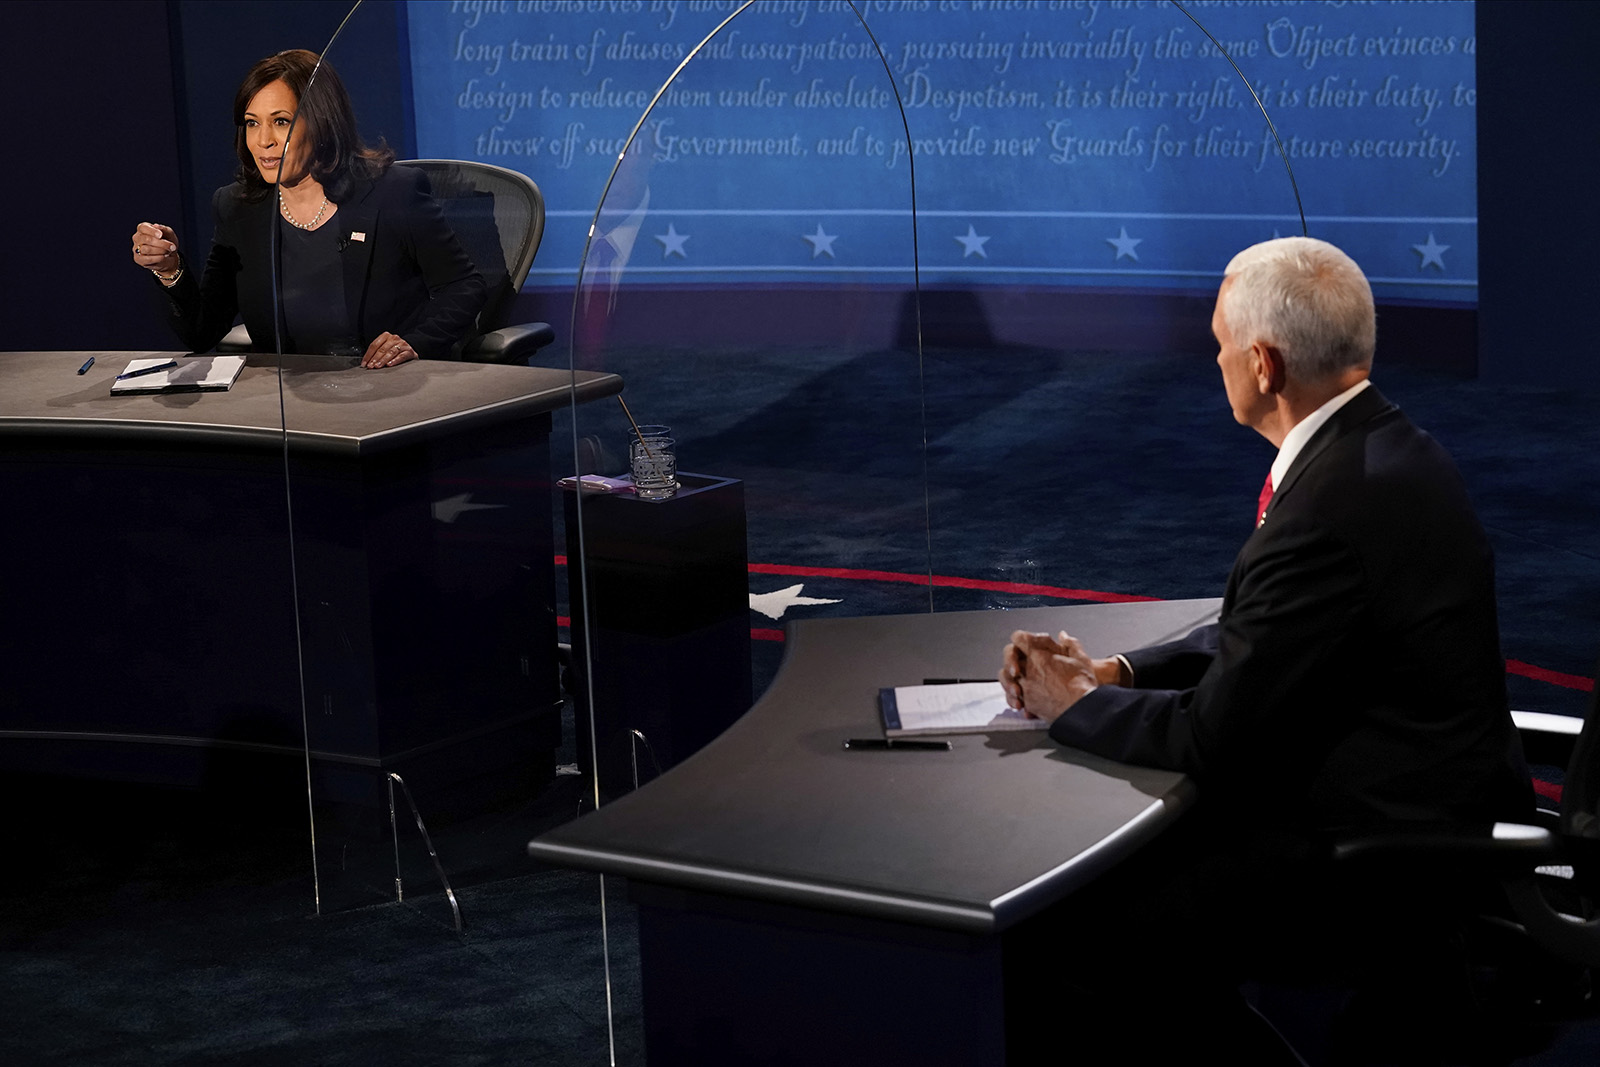 Democratic vice presidential candidate Sen. Kamala Harris, D-Calif., answers a question as Vice President Mike Pence listens during the vice presidential debate on Wed